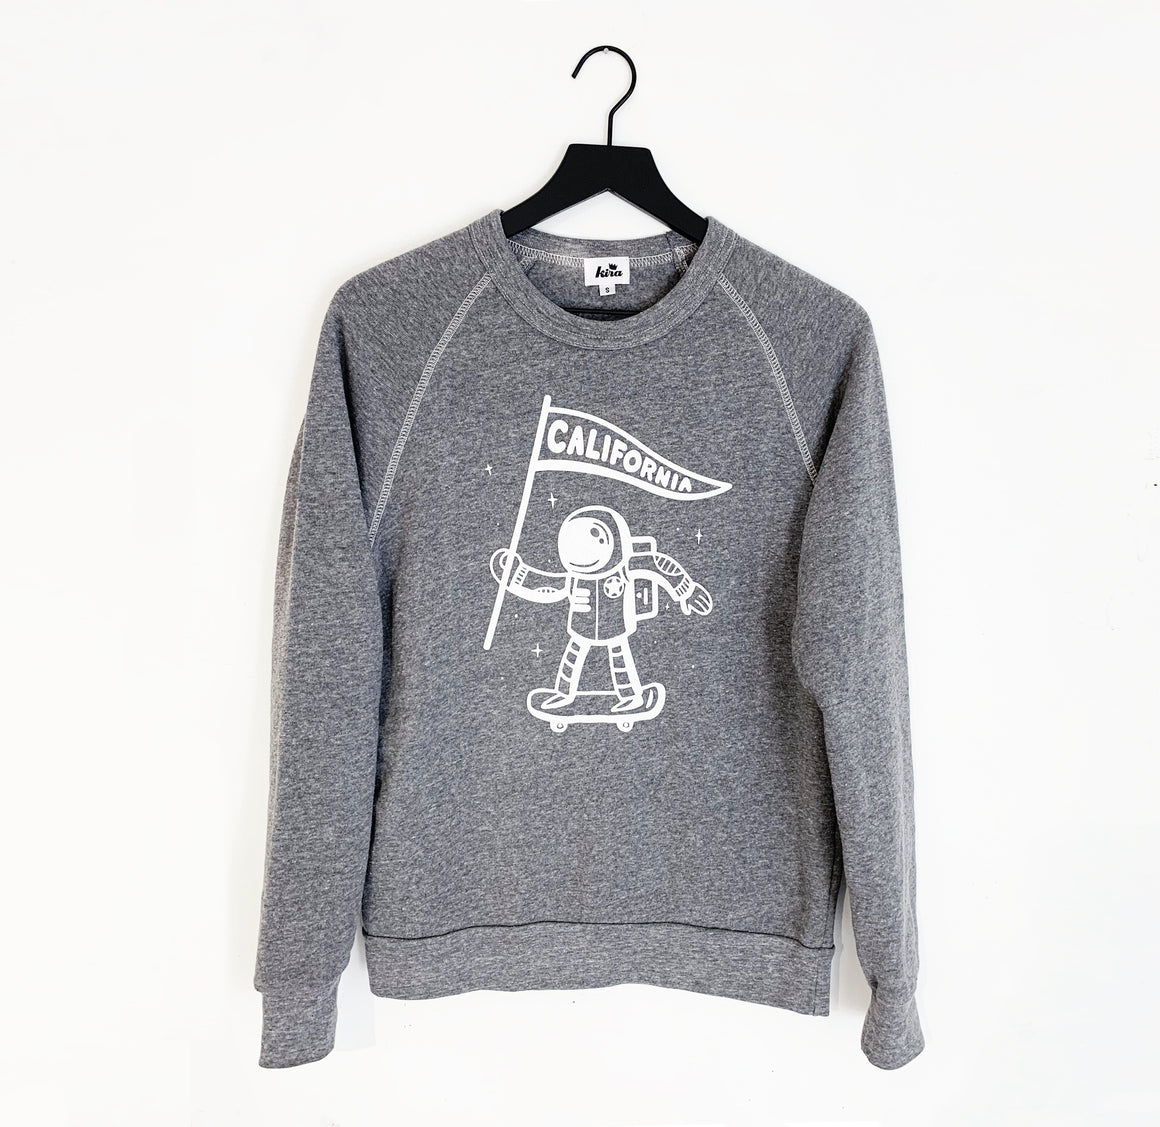 Unisex Adult California Astronaut Raglan Sweatshirt, Heather Grey